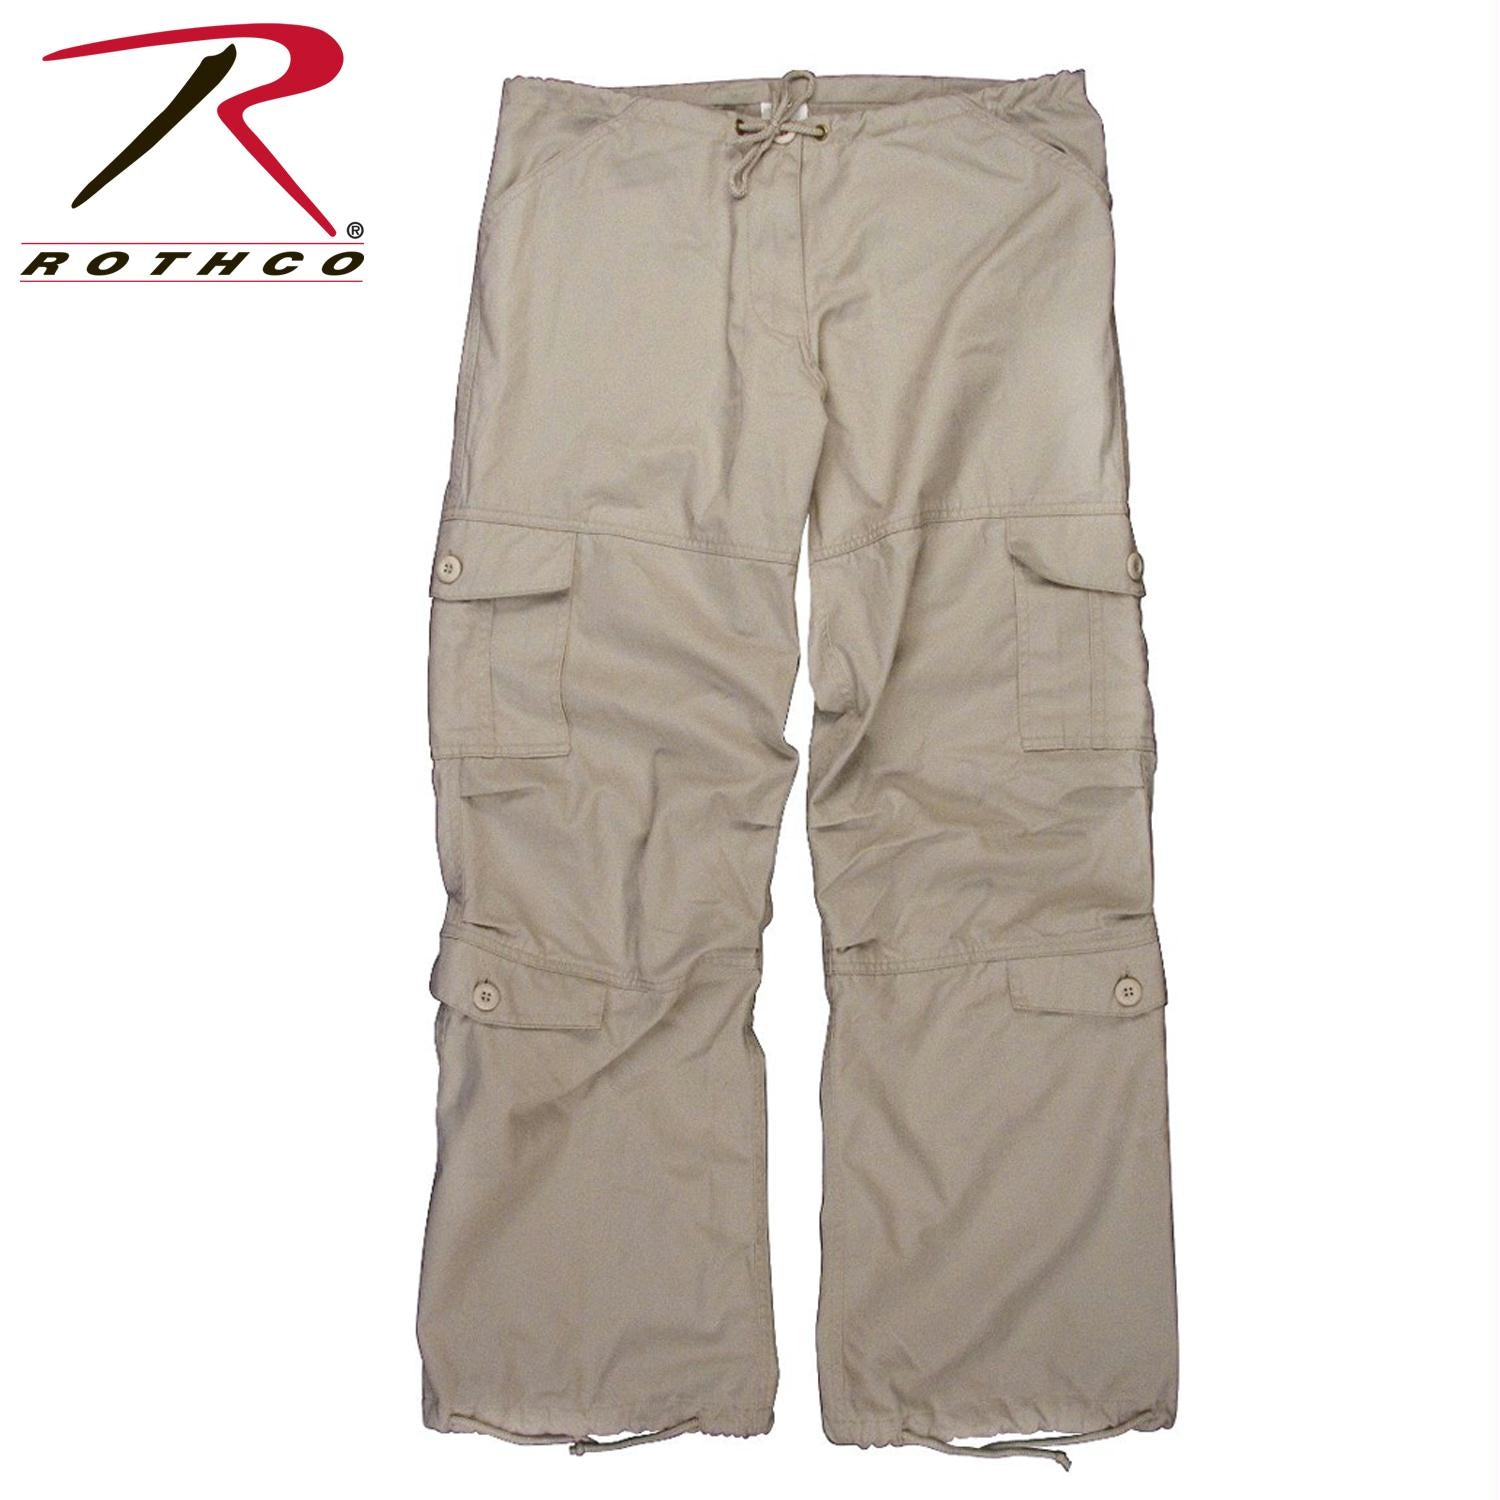 Rothco Women's Vintage Paratrooper Fatigue Pants - Stone / XL